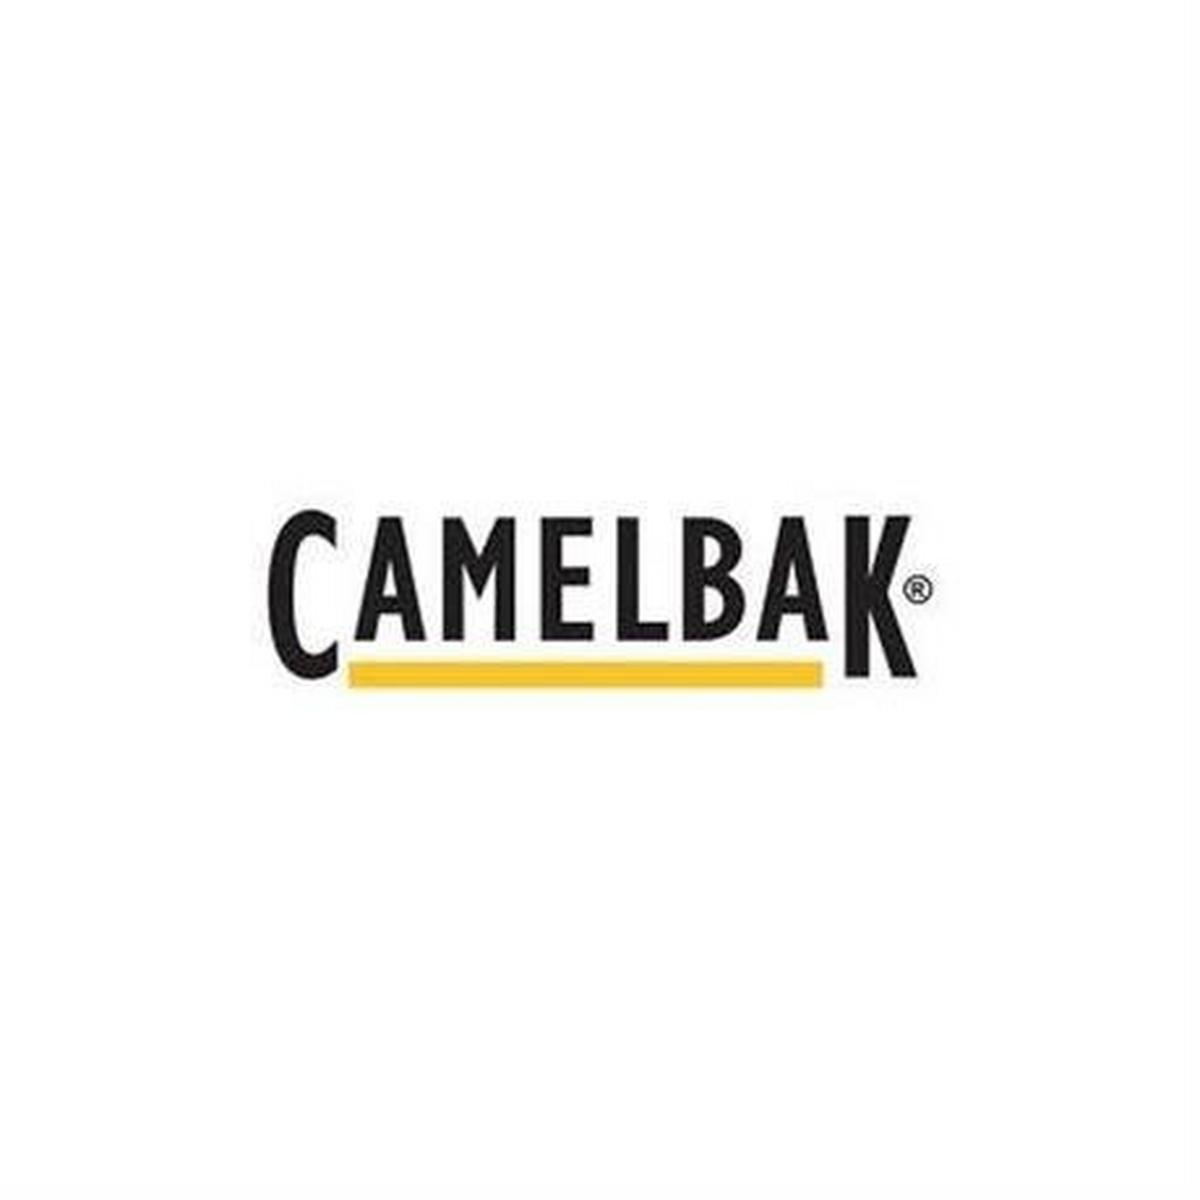 Camelbak Spare/Accessory Eddy+ Bite Valves and Straw Clear (Pack of 2)